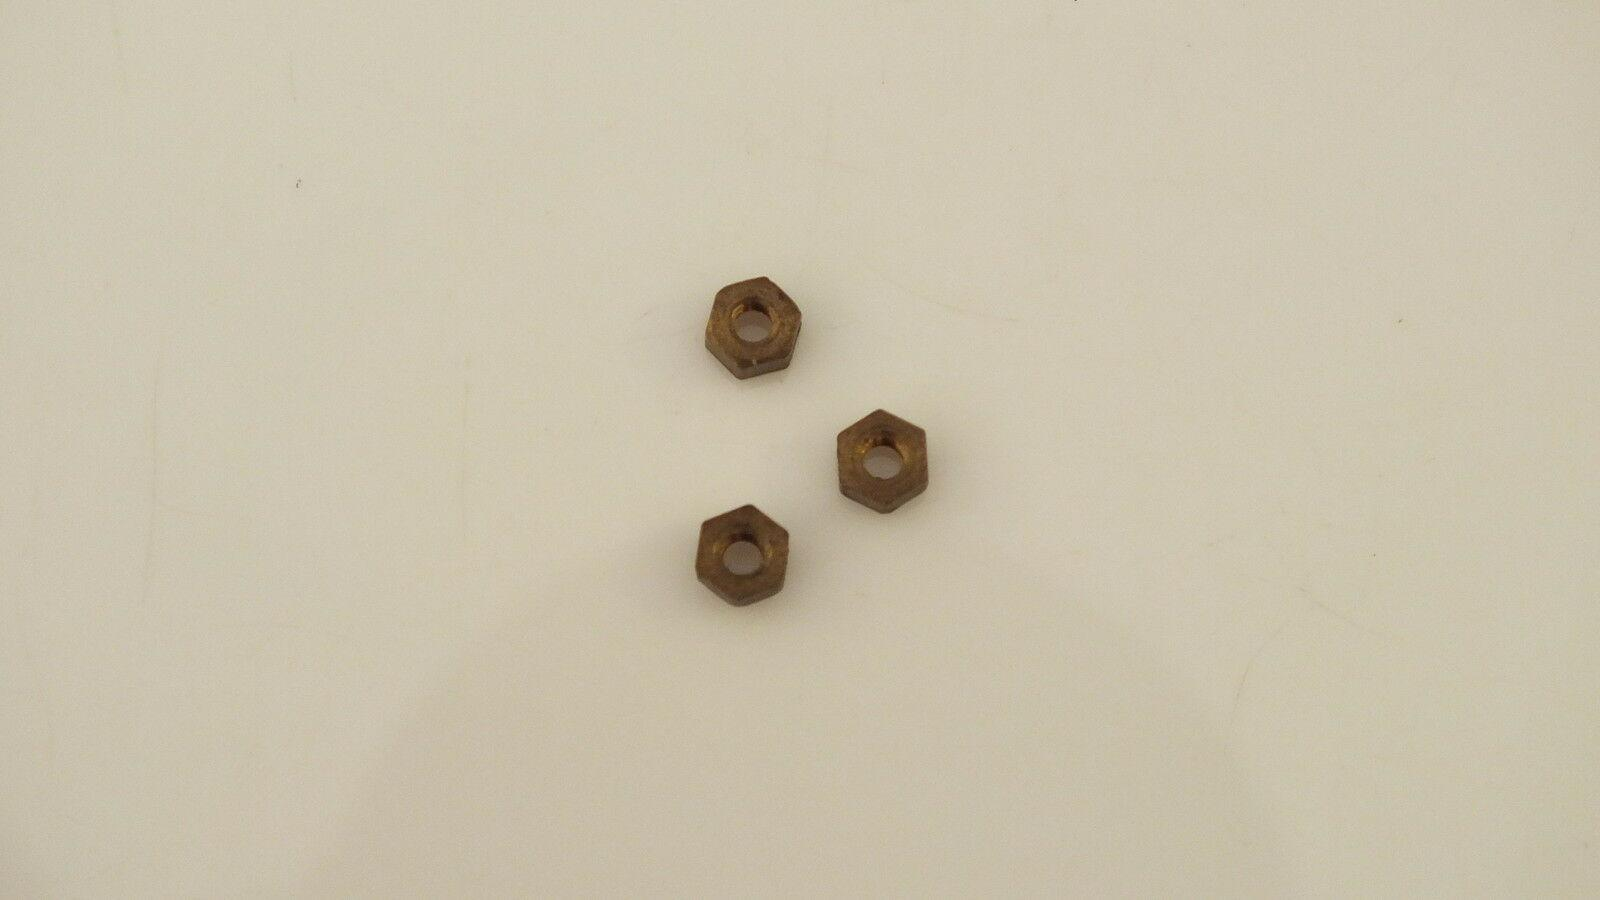 S1027  HORNBY TRIANG   3 X 10BA BRASS NUT TENSION OUT RT42 CONTOLLER         L1C